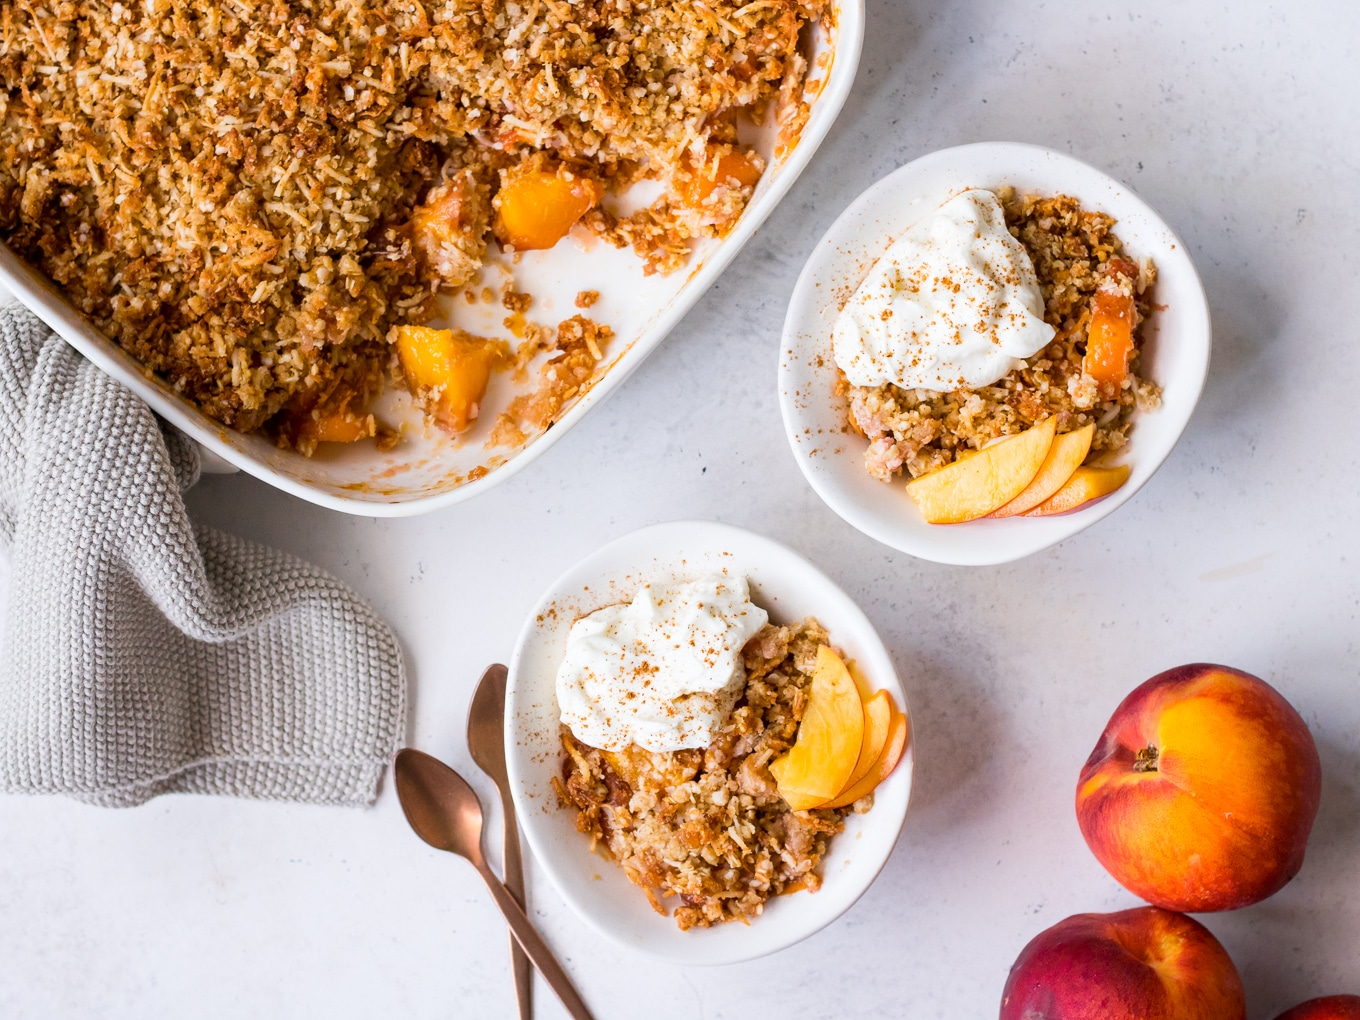 Gluten free nectarine crumble topped with yoghurt and cinnamon